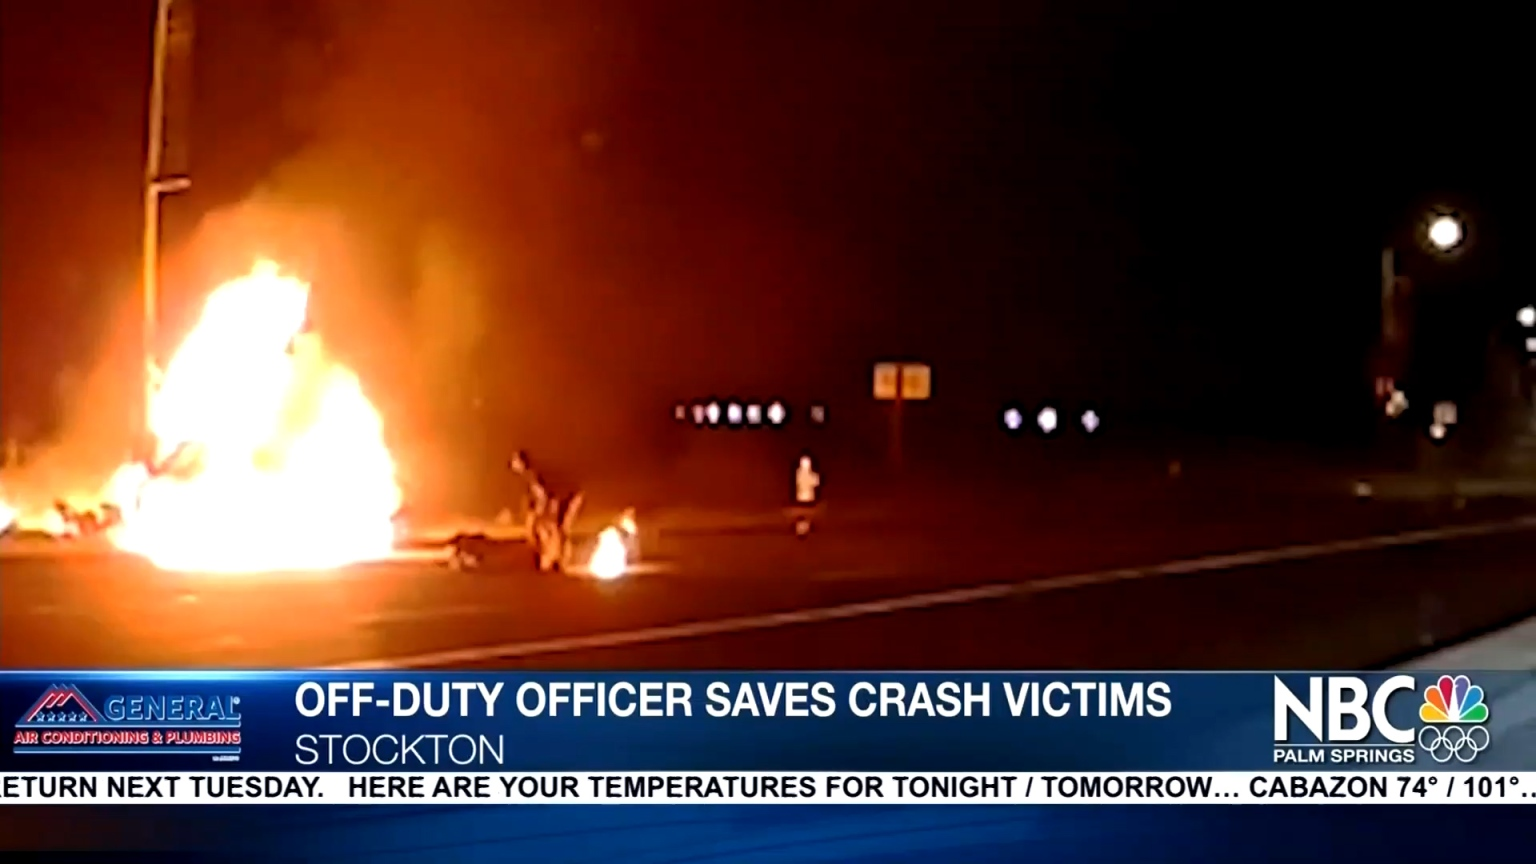 Heroic officer rushes into flames to save lives